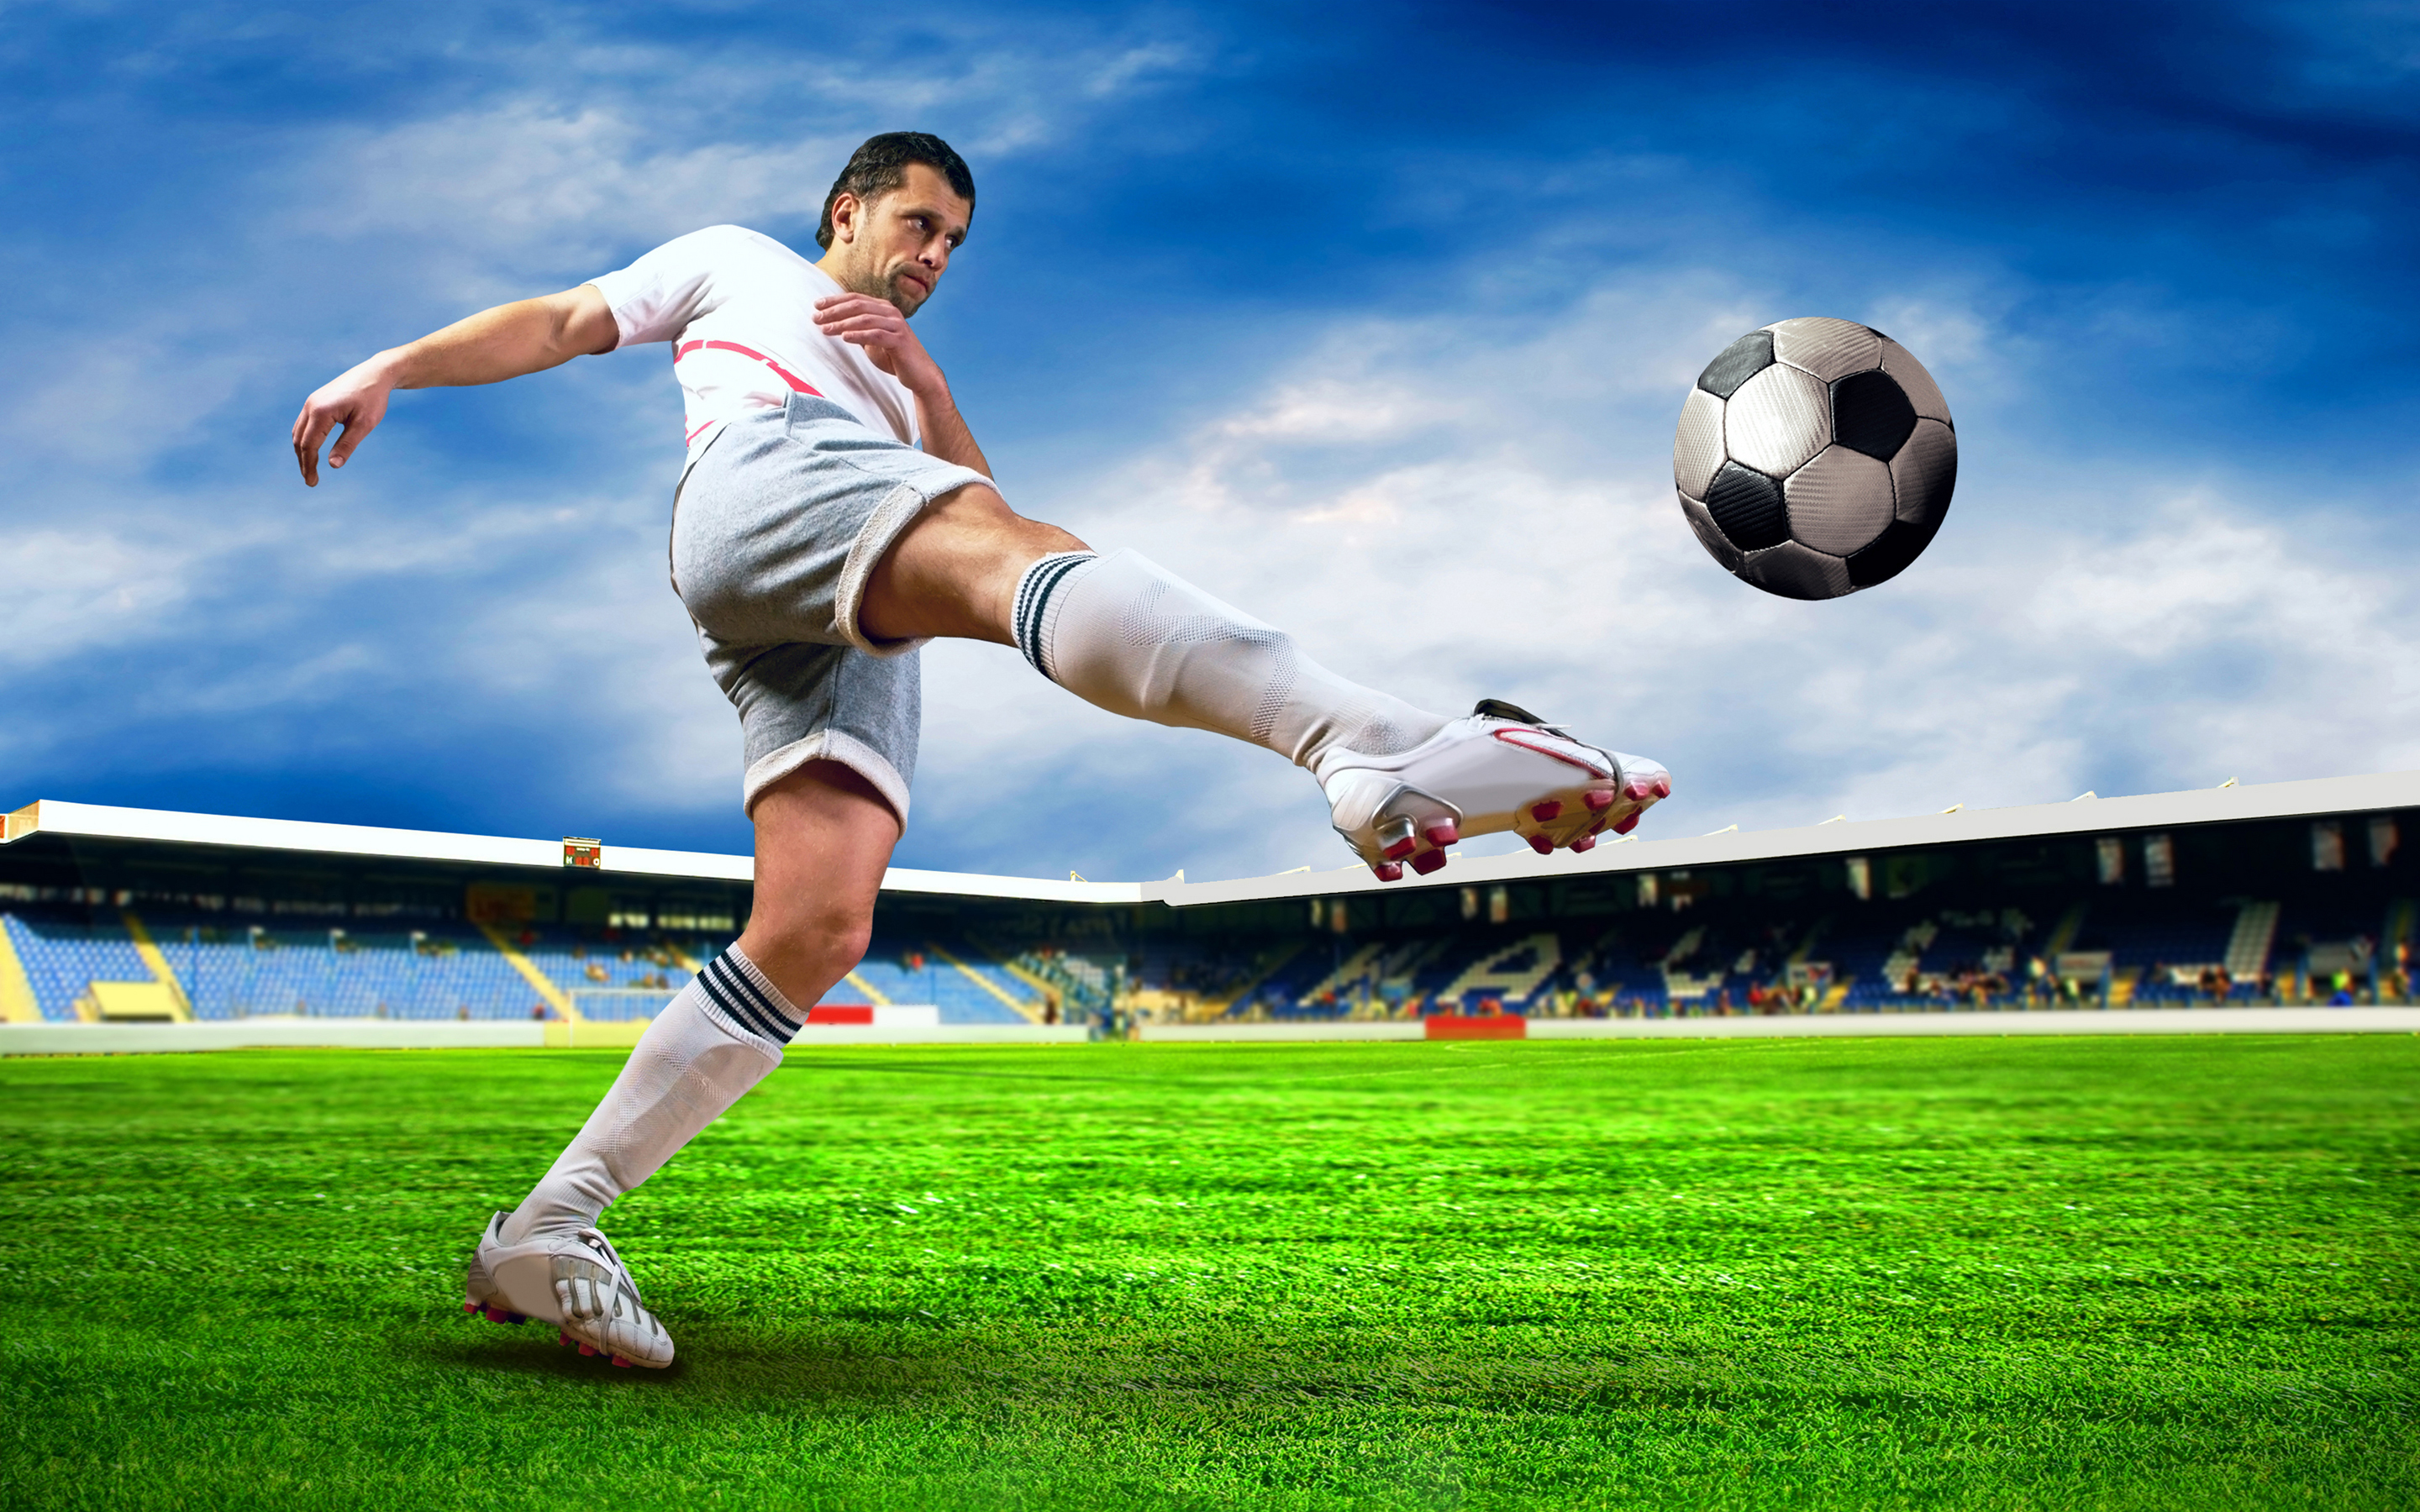 best sports franchise opportunities UK